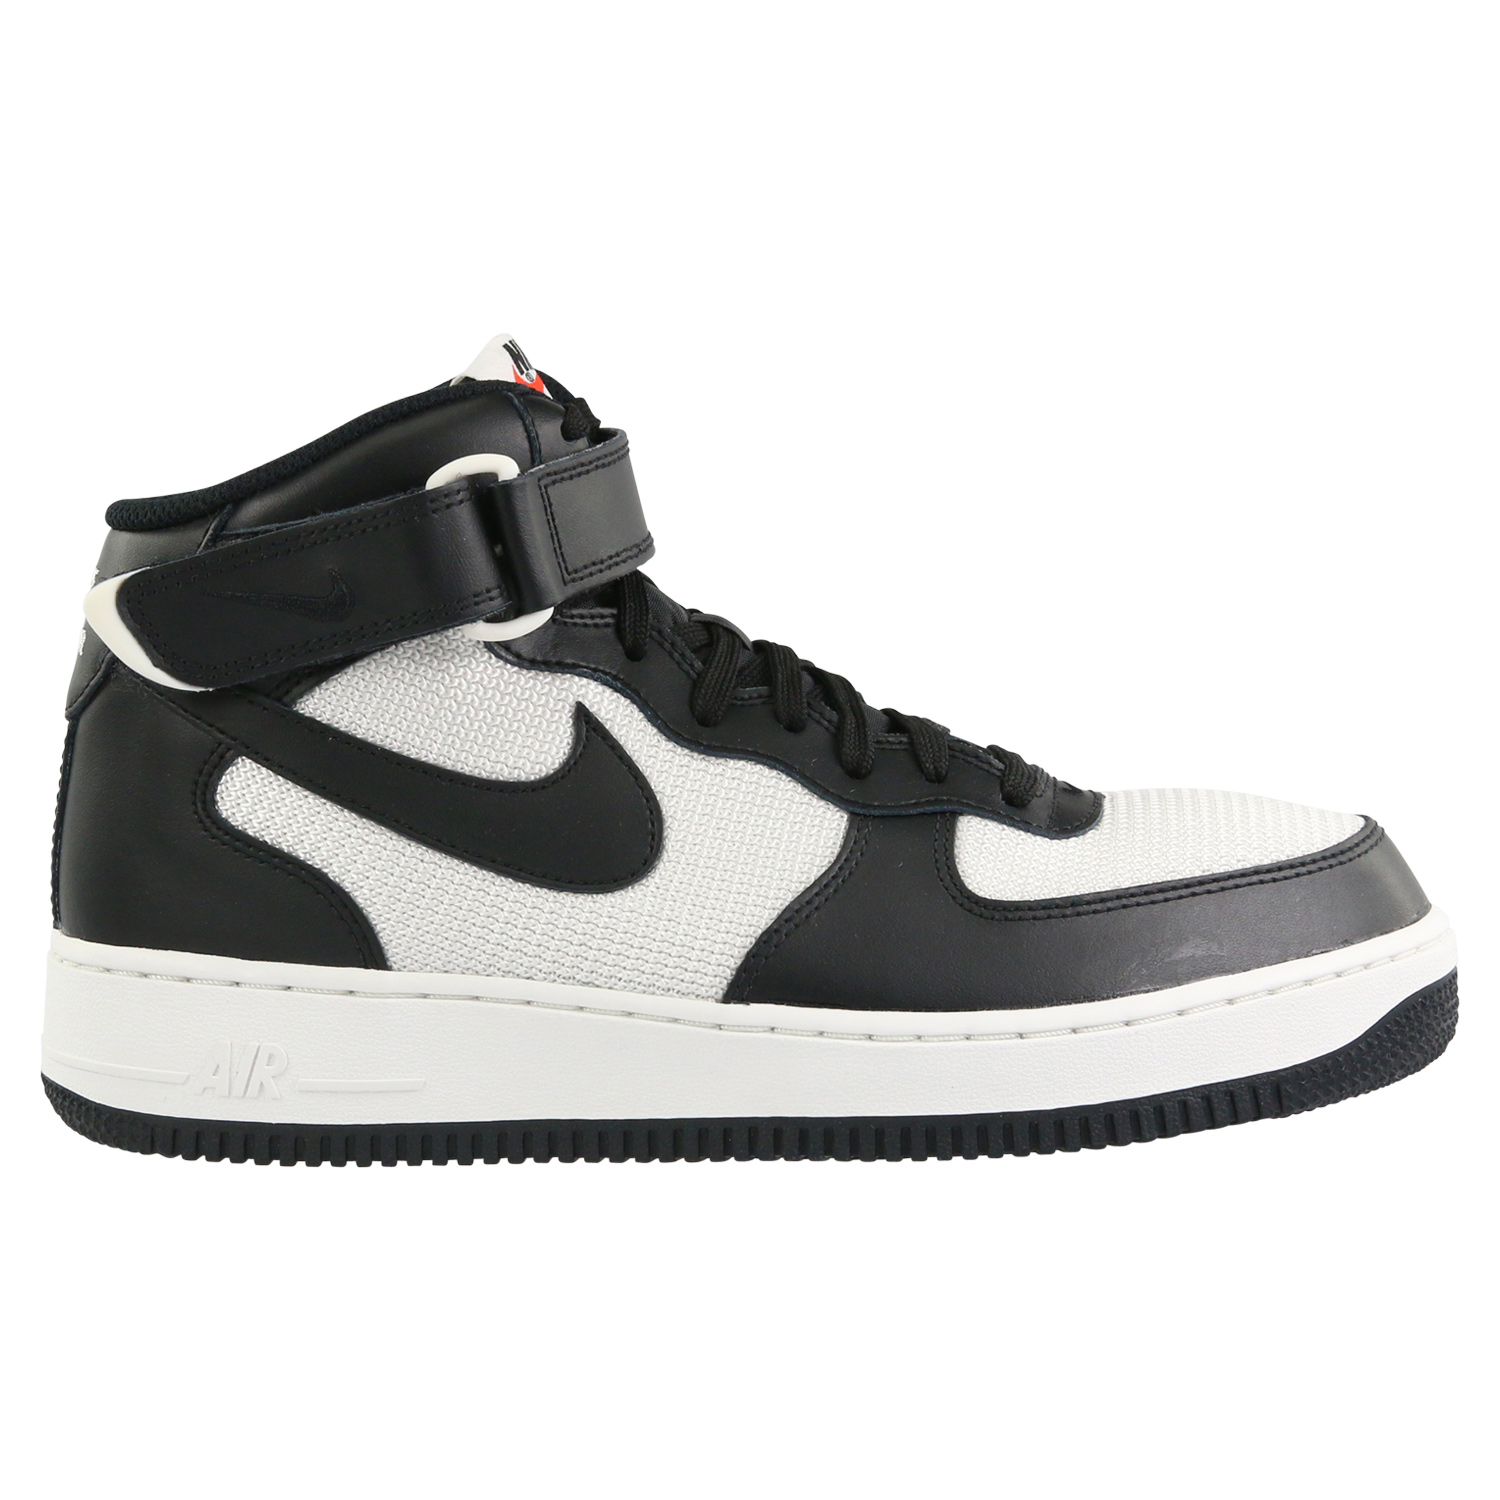 nike air force 1 mid 07 high lv8 basketballschuhe sneaker schuhe herren ebay. Black Bedroom Furniture Sets. Home Design Ideas